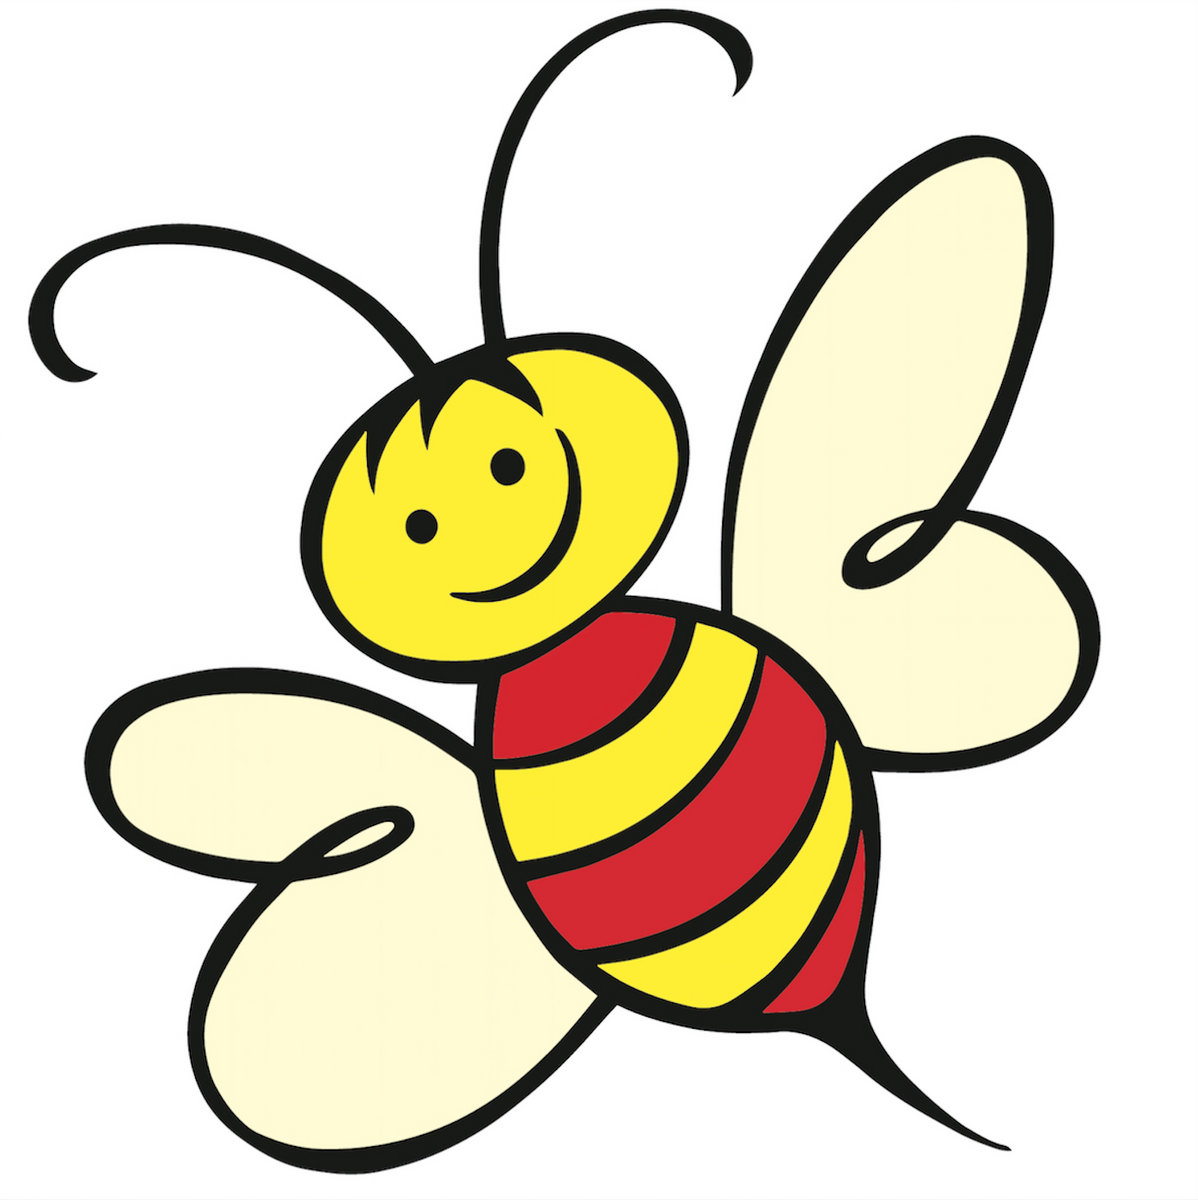 Buzzy Bee Cartoon